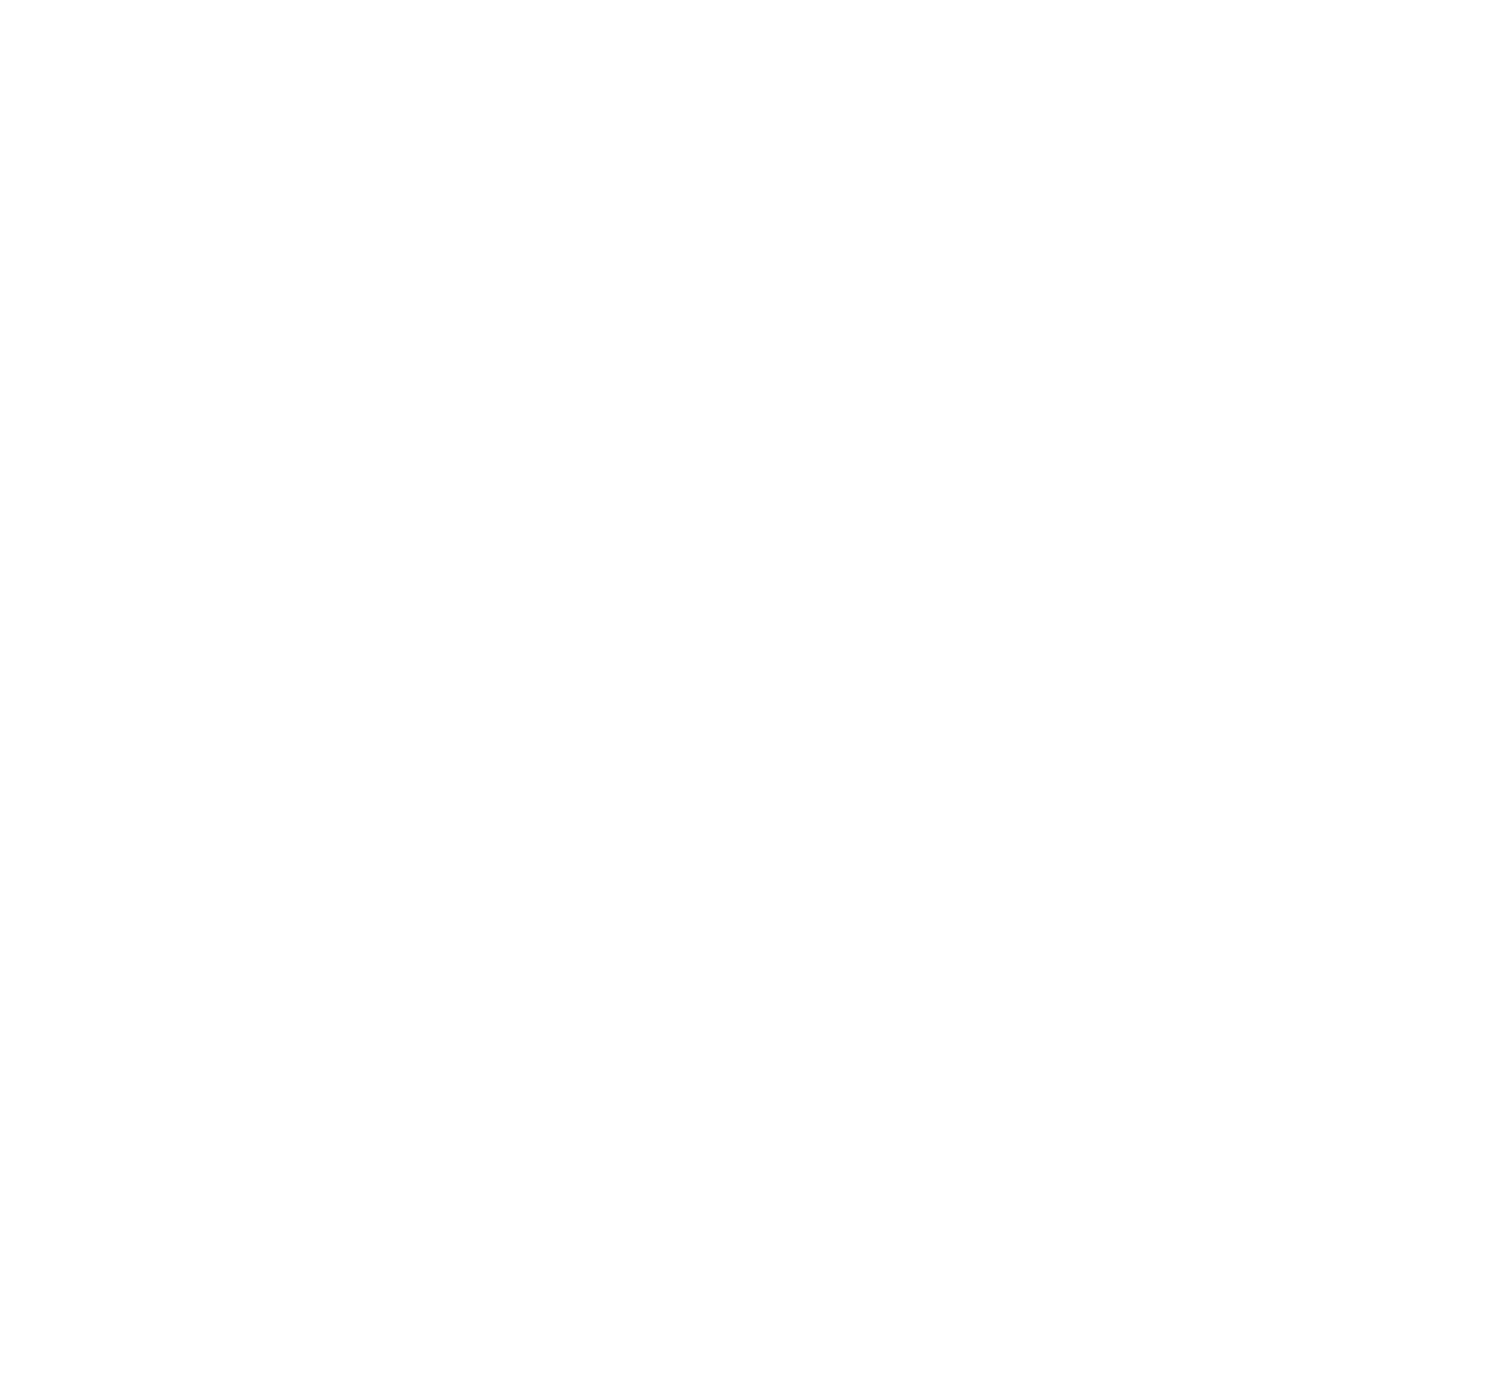 Blood Brother Cinema Co.